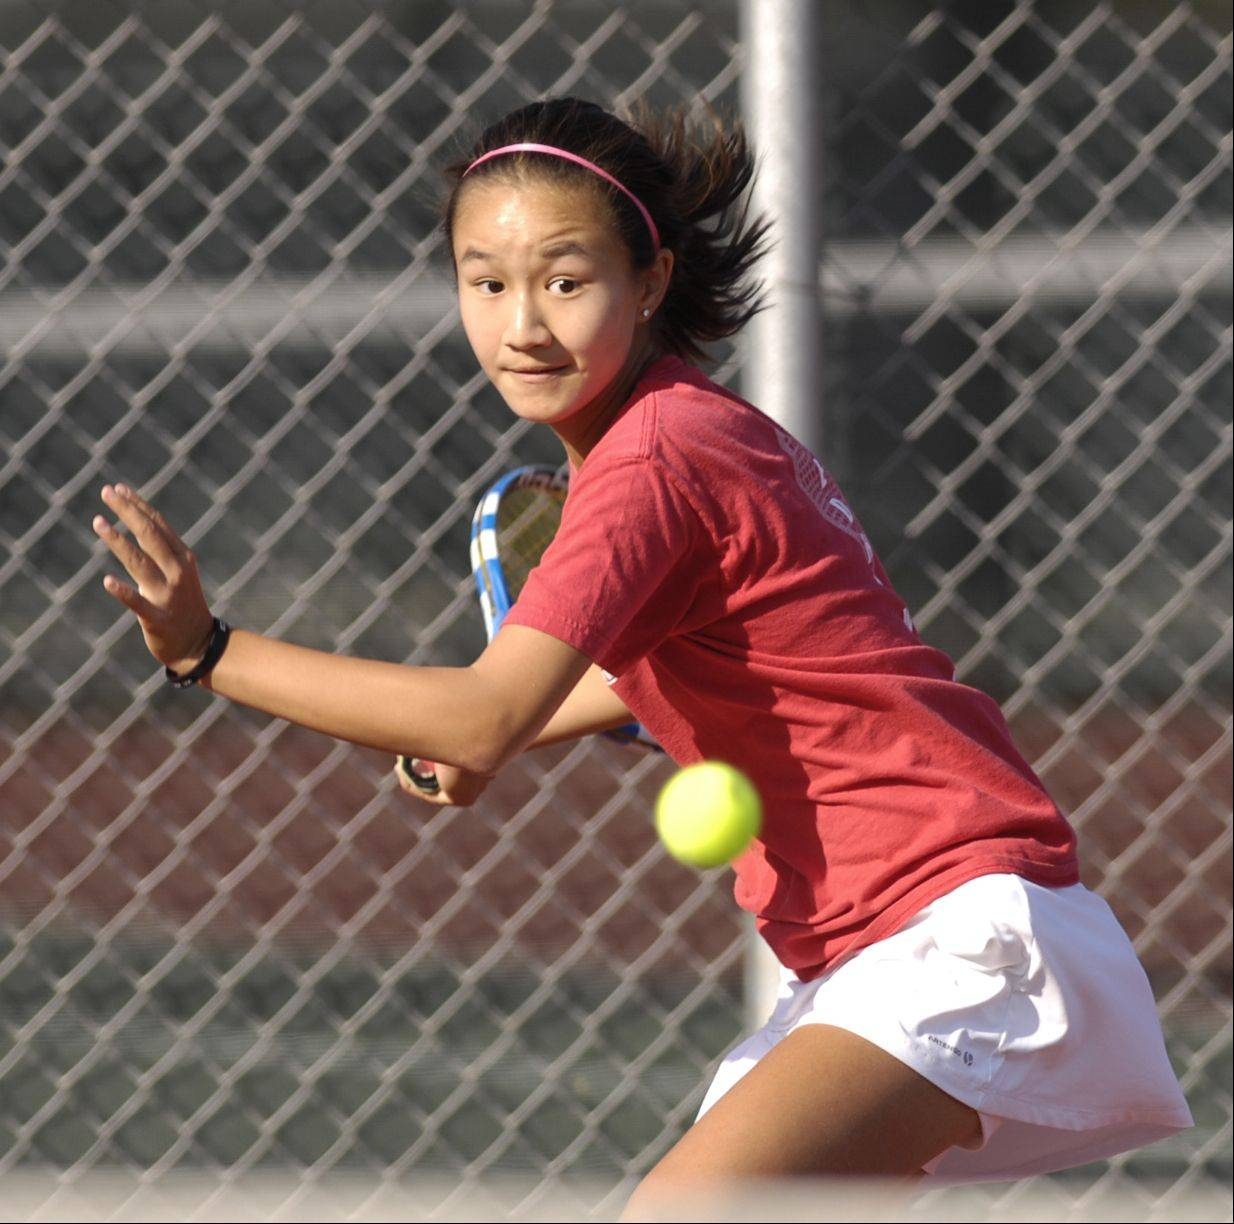 Naperville Central's Tiffany Chen plays against Anusha Pai of Neuqua Valley in girls varsity tennis on Wednesday.